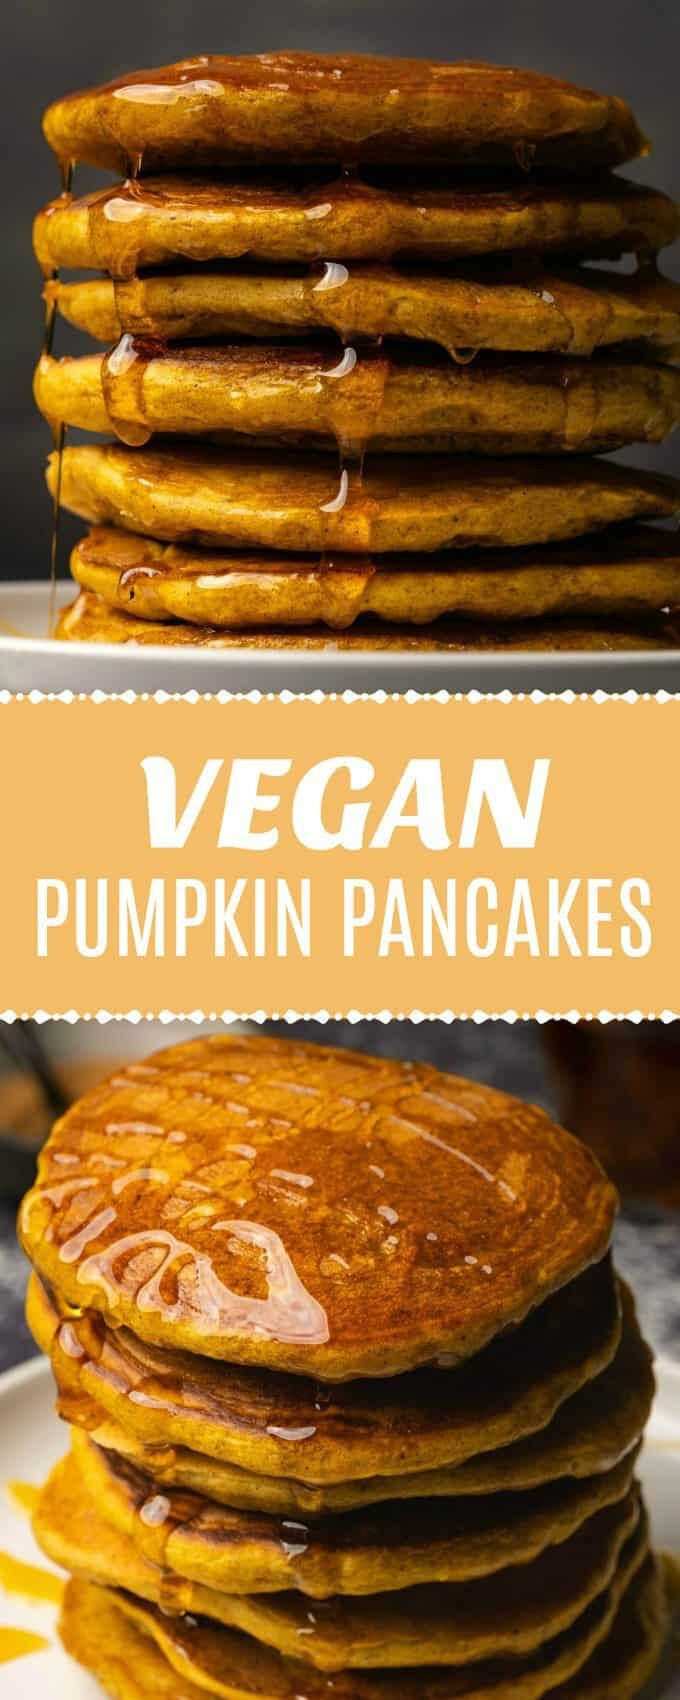 These vegan pumpkin pancakes are so fluffy! They have all the delicious spicy fall flavors and make the perfect breakfast. #vegan #veganbreakfast #veg...